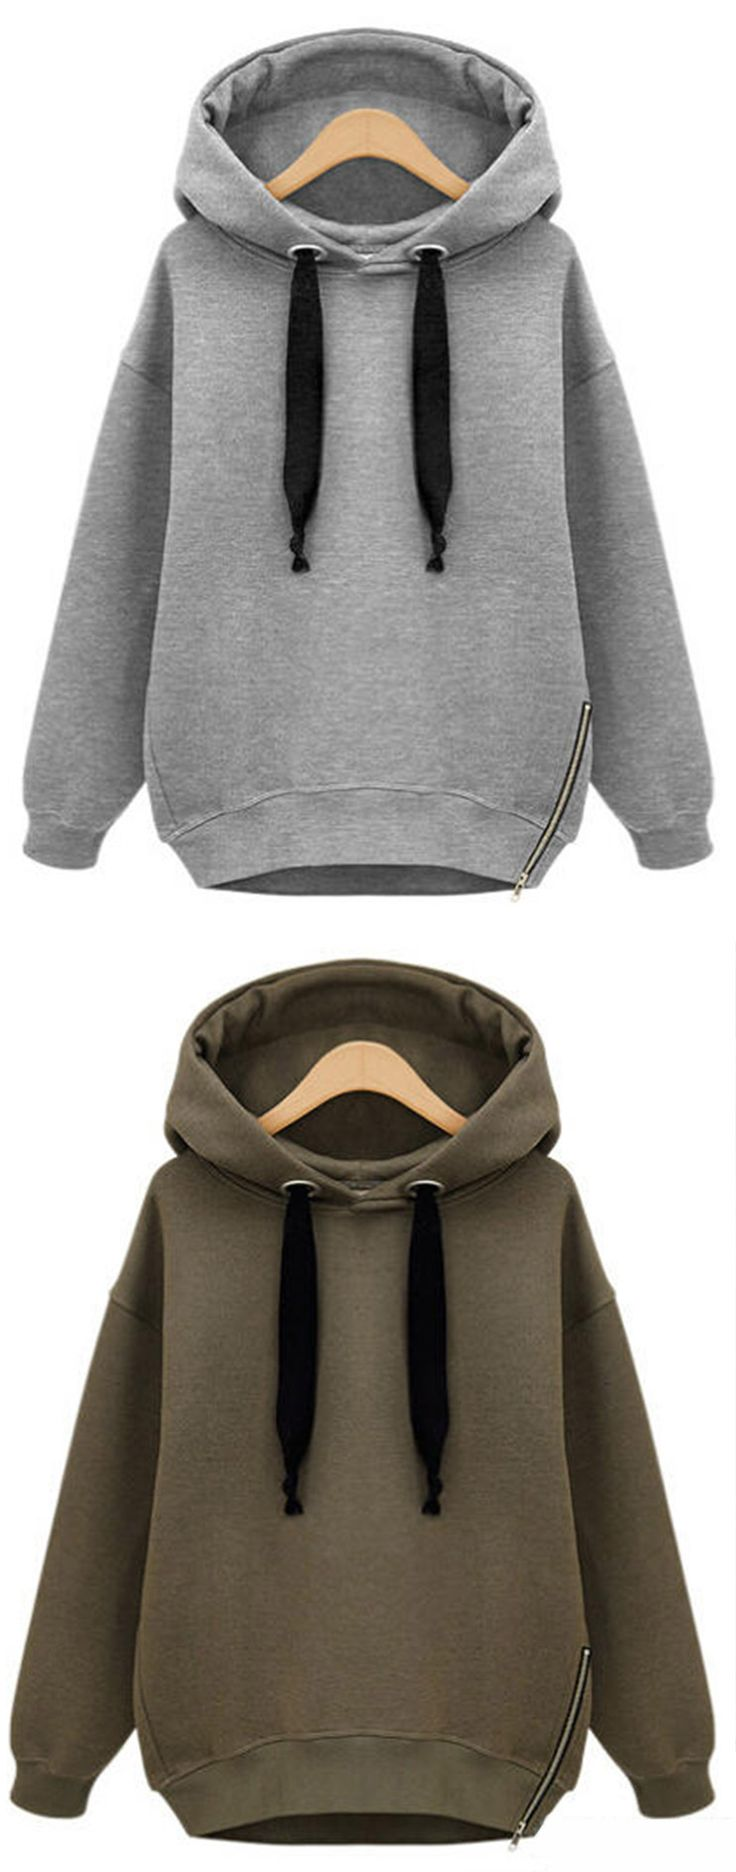 It's a time to slip into something a little more comfortable. The Easy Does It Sweatshirt with a lined drawstring hood,features fleece lining and oversized casual style. Shop this look at CUPSHE.COM !